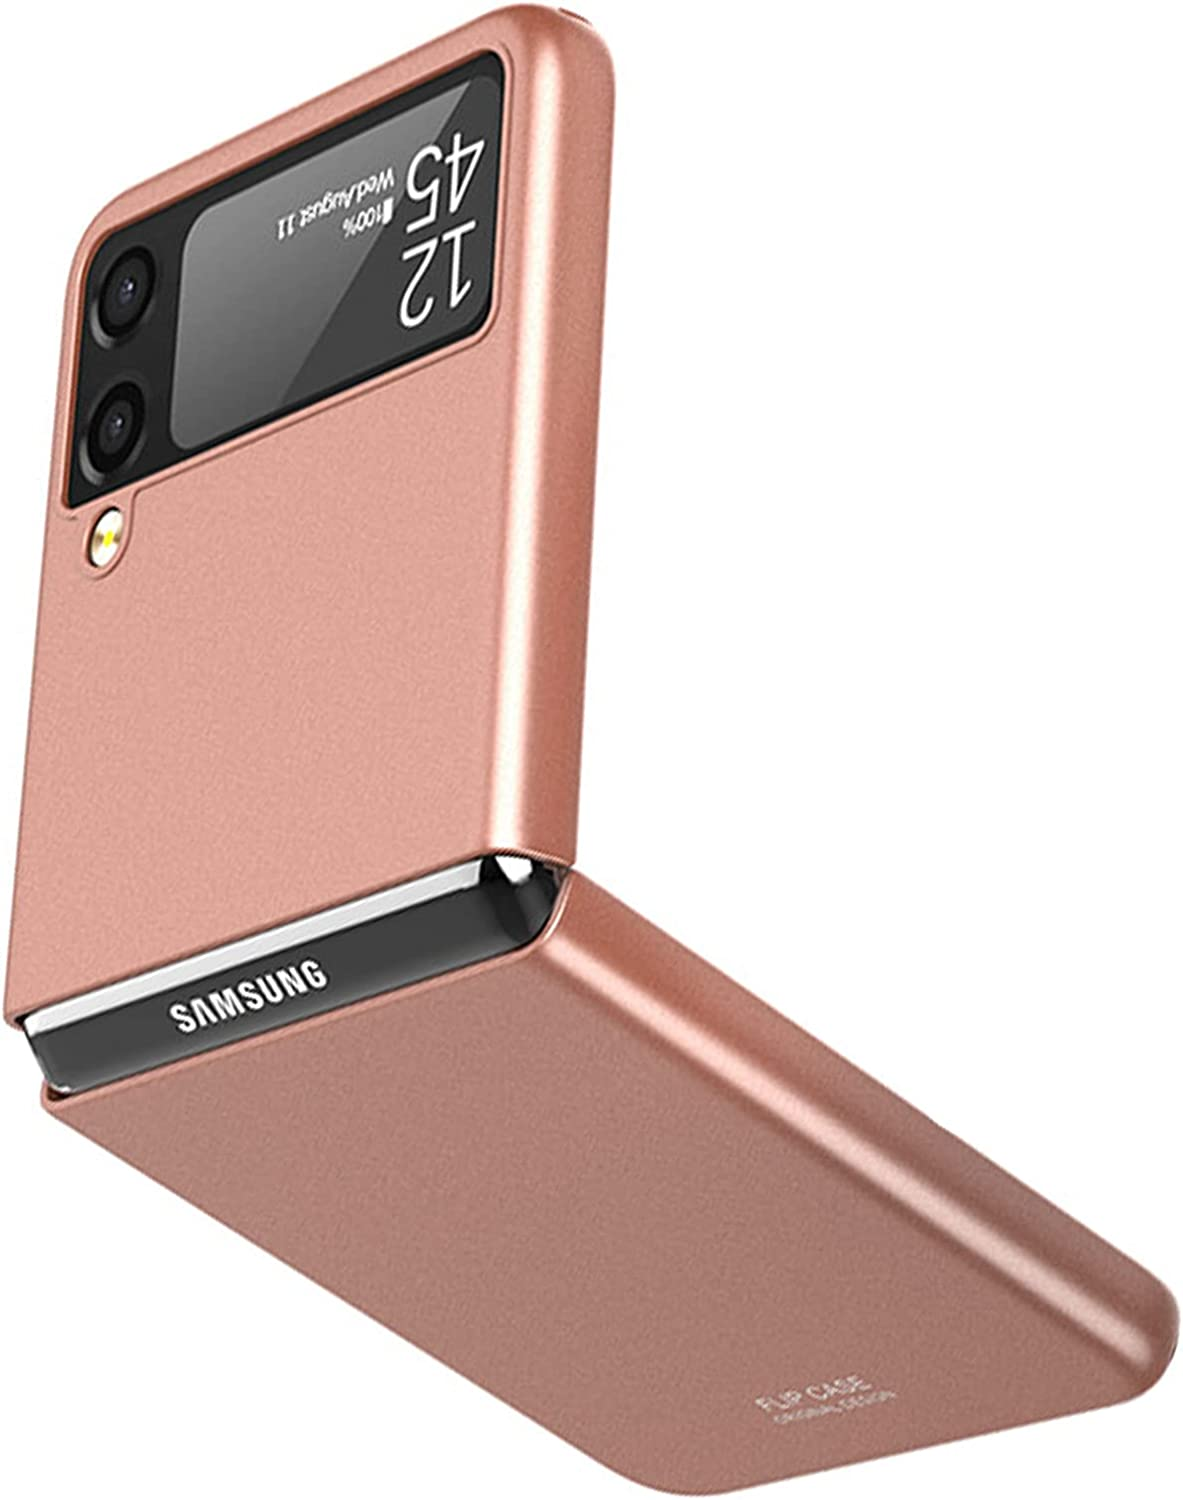 NINKI Rose Gold Ultra Slim Galaxy Z Flip 3 Case 5g 2021,Shockproof Solid PC Cover Thin Protective Case for Samsung Galaxy Z Flip 3 Case 5g,Compatible Samsung Galaxy Z Flip 3 5G Accessories Phone Case